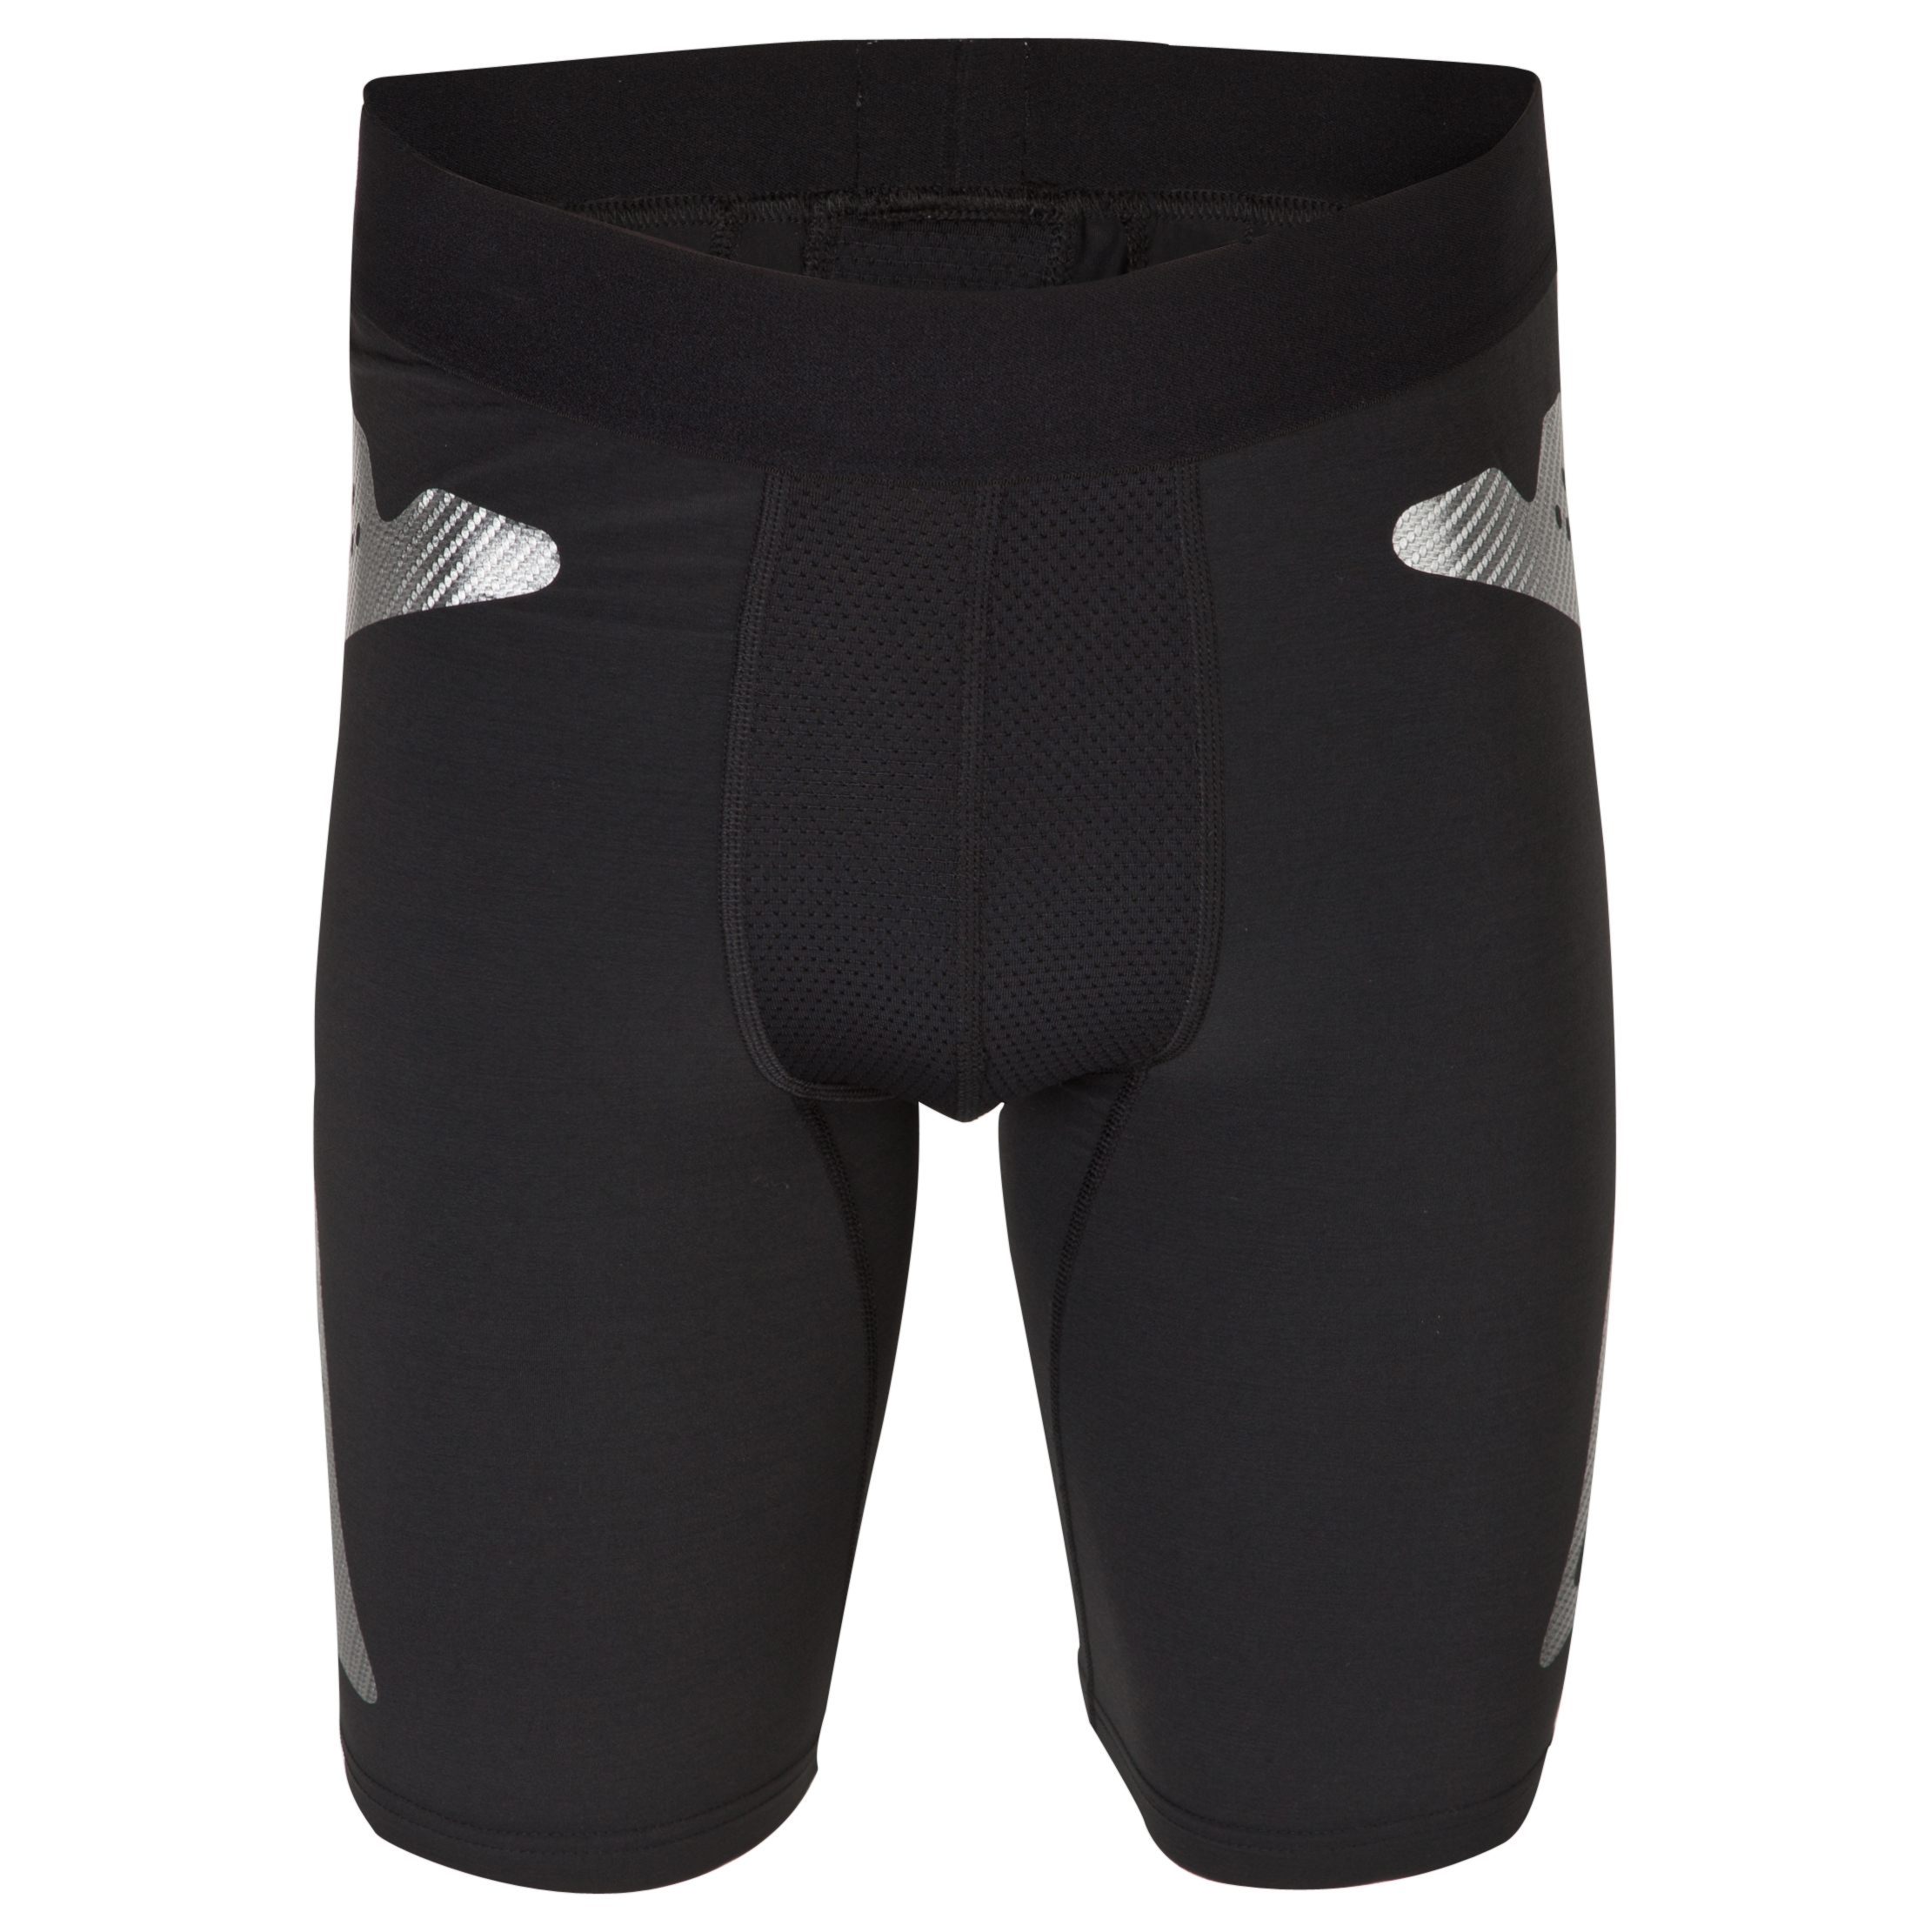 Nike Pro Combat Hyperstrong Slider Base Layer Short Black